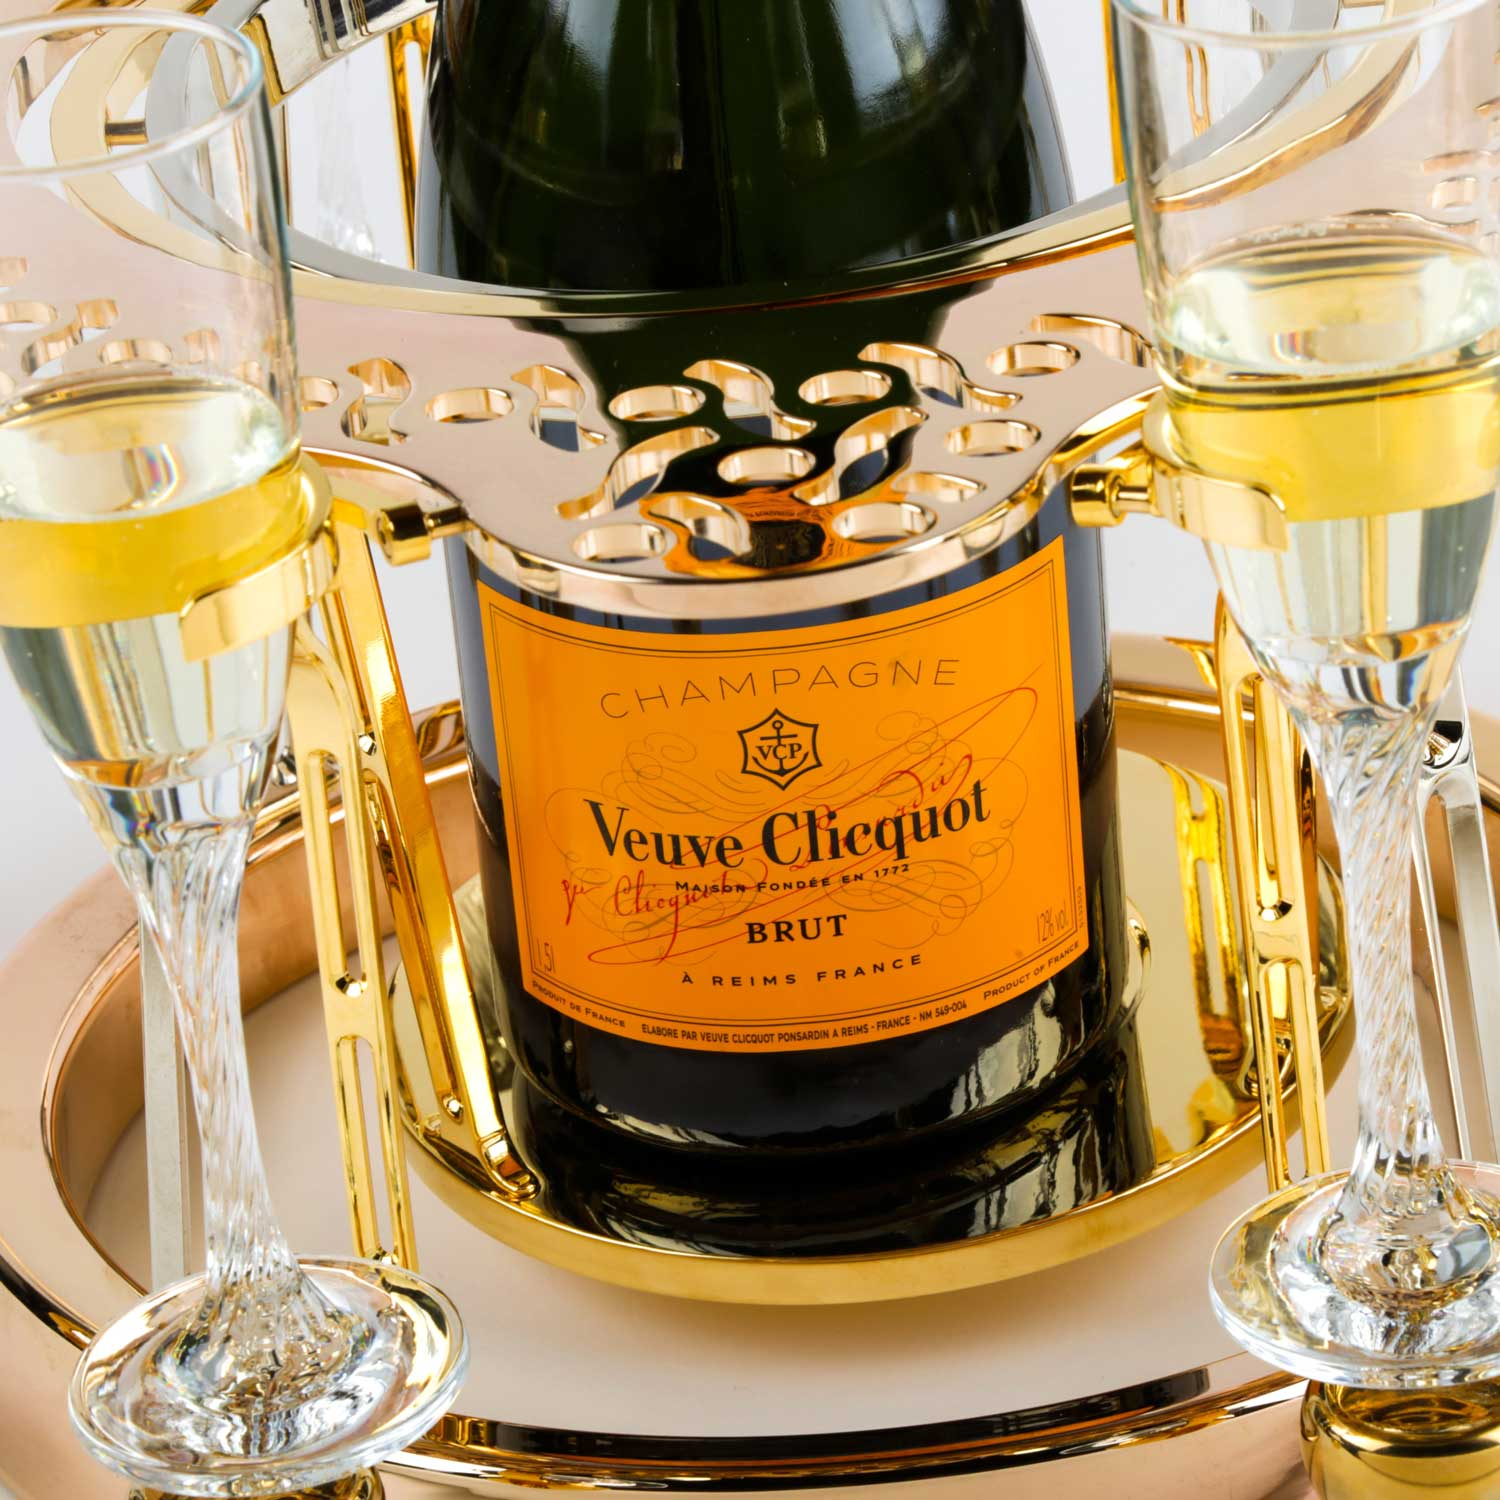 Tulip By Germain luxury champagne bucket Lace edition Veuve cliquot